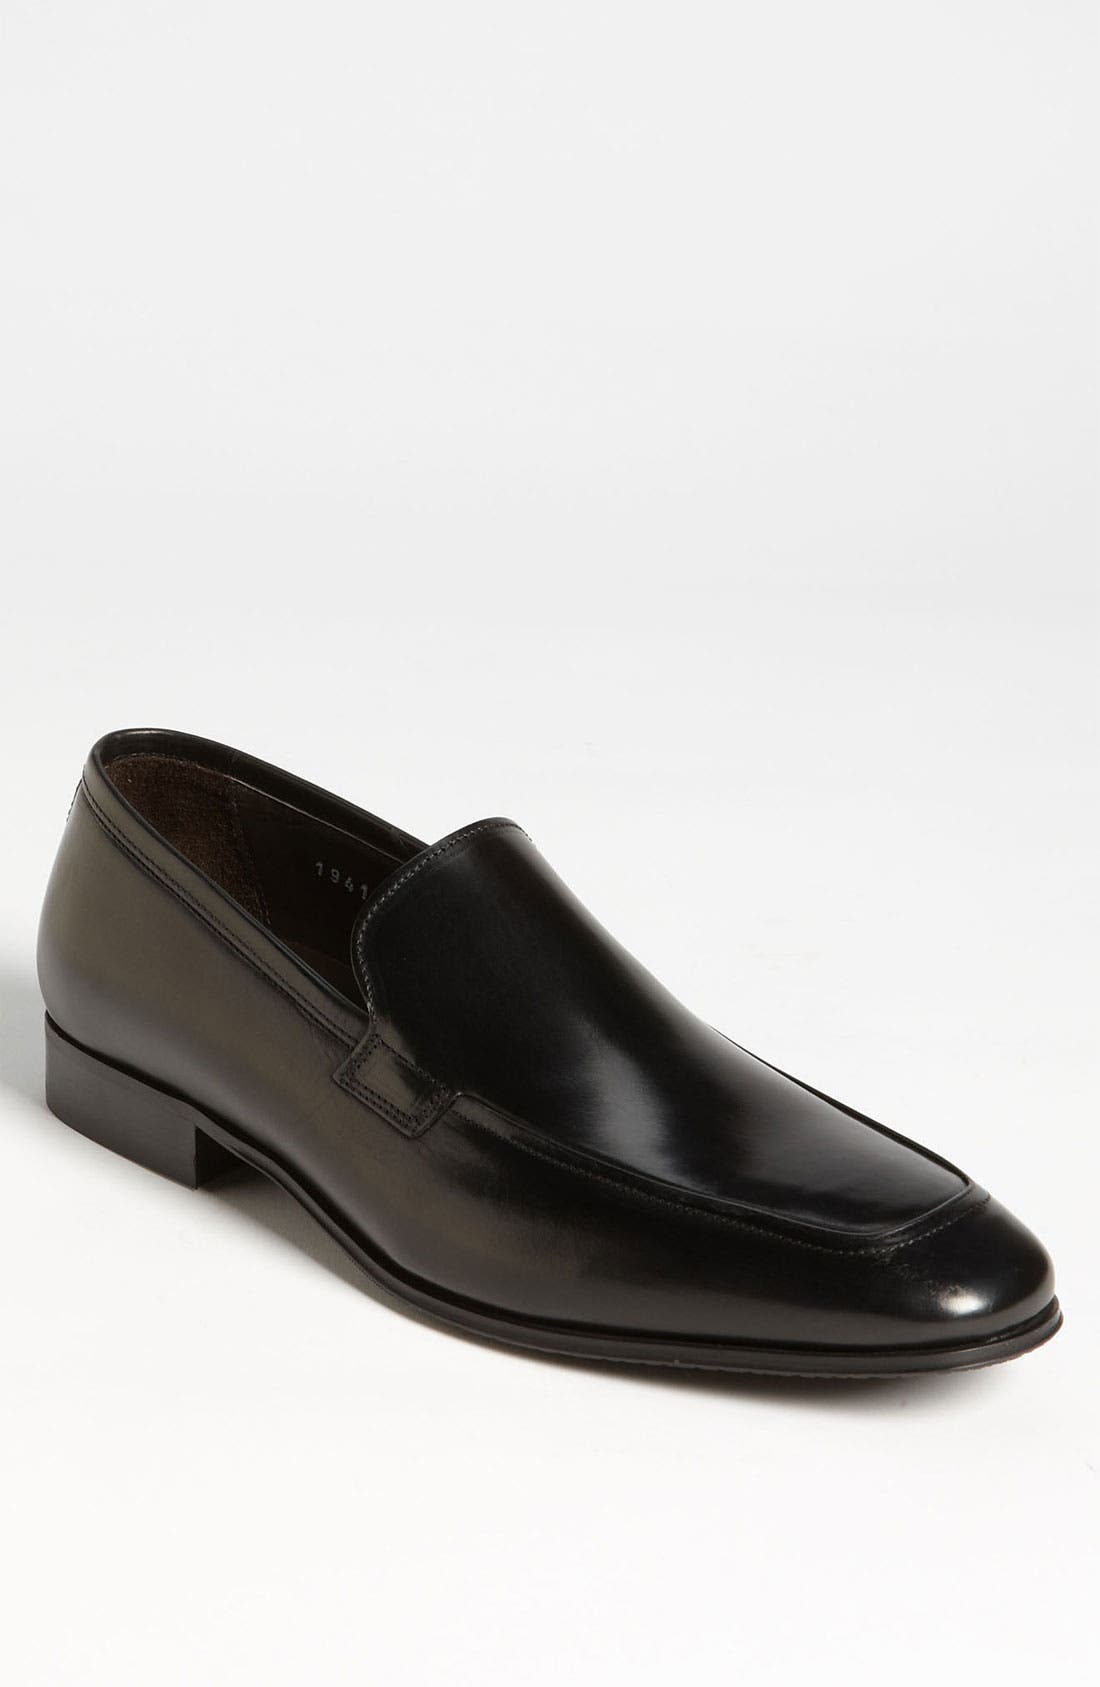 Main Image - To Boot New York 'Andrew' Loafer